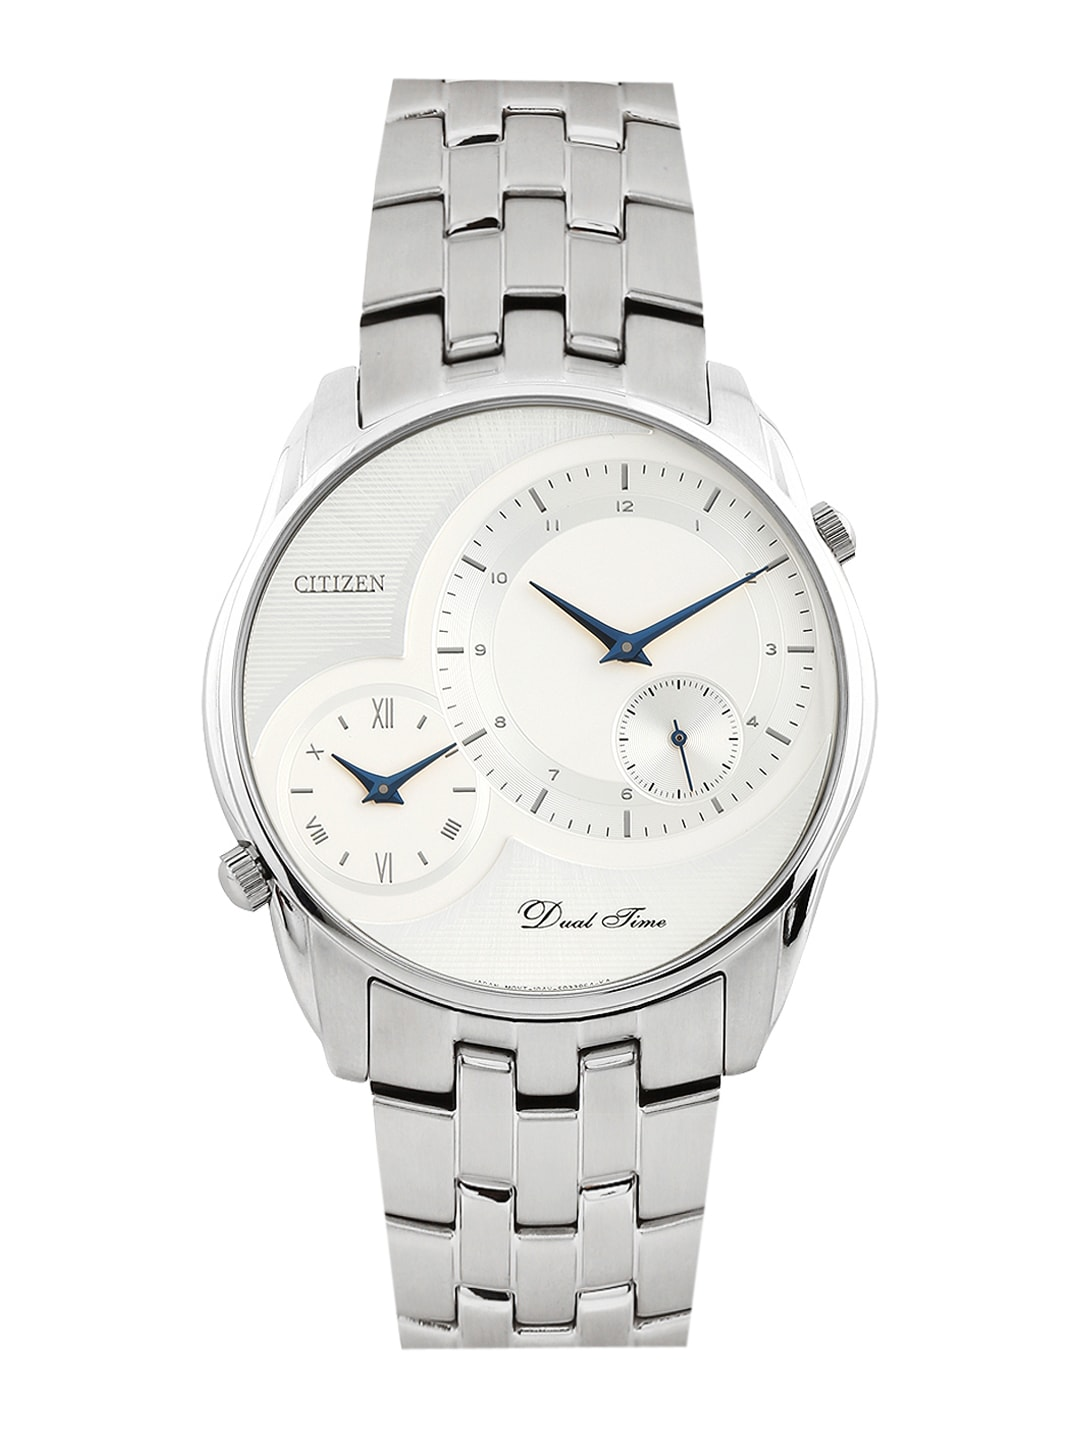 Citizen Men White & Silver-Toned Dial Watch AO3005-56B